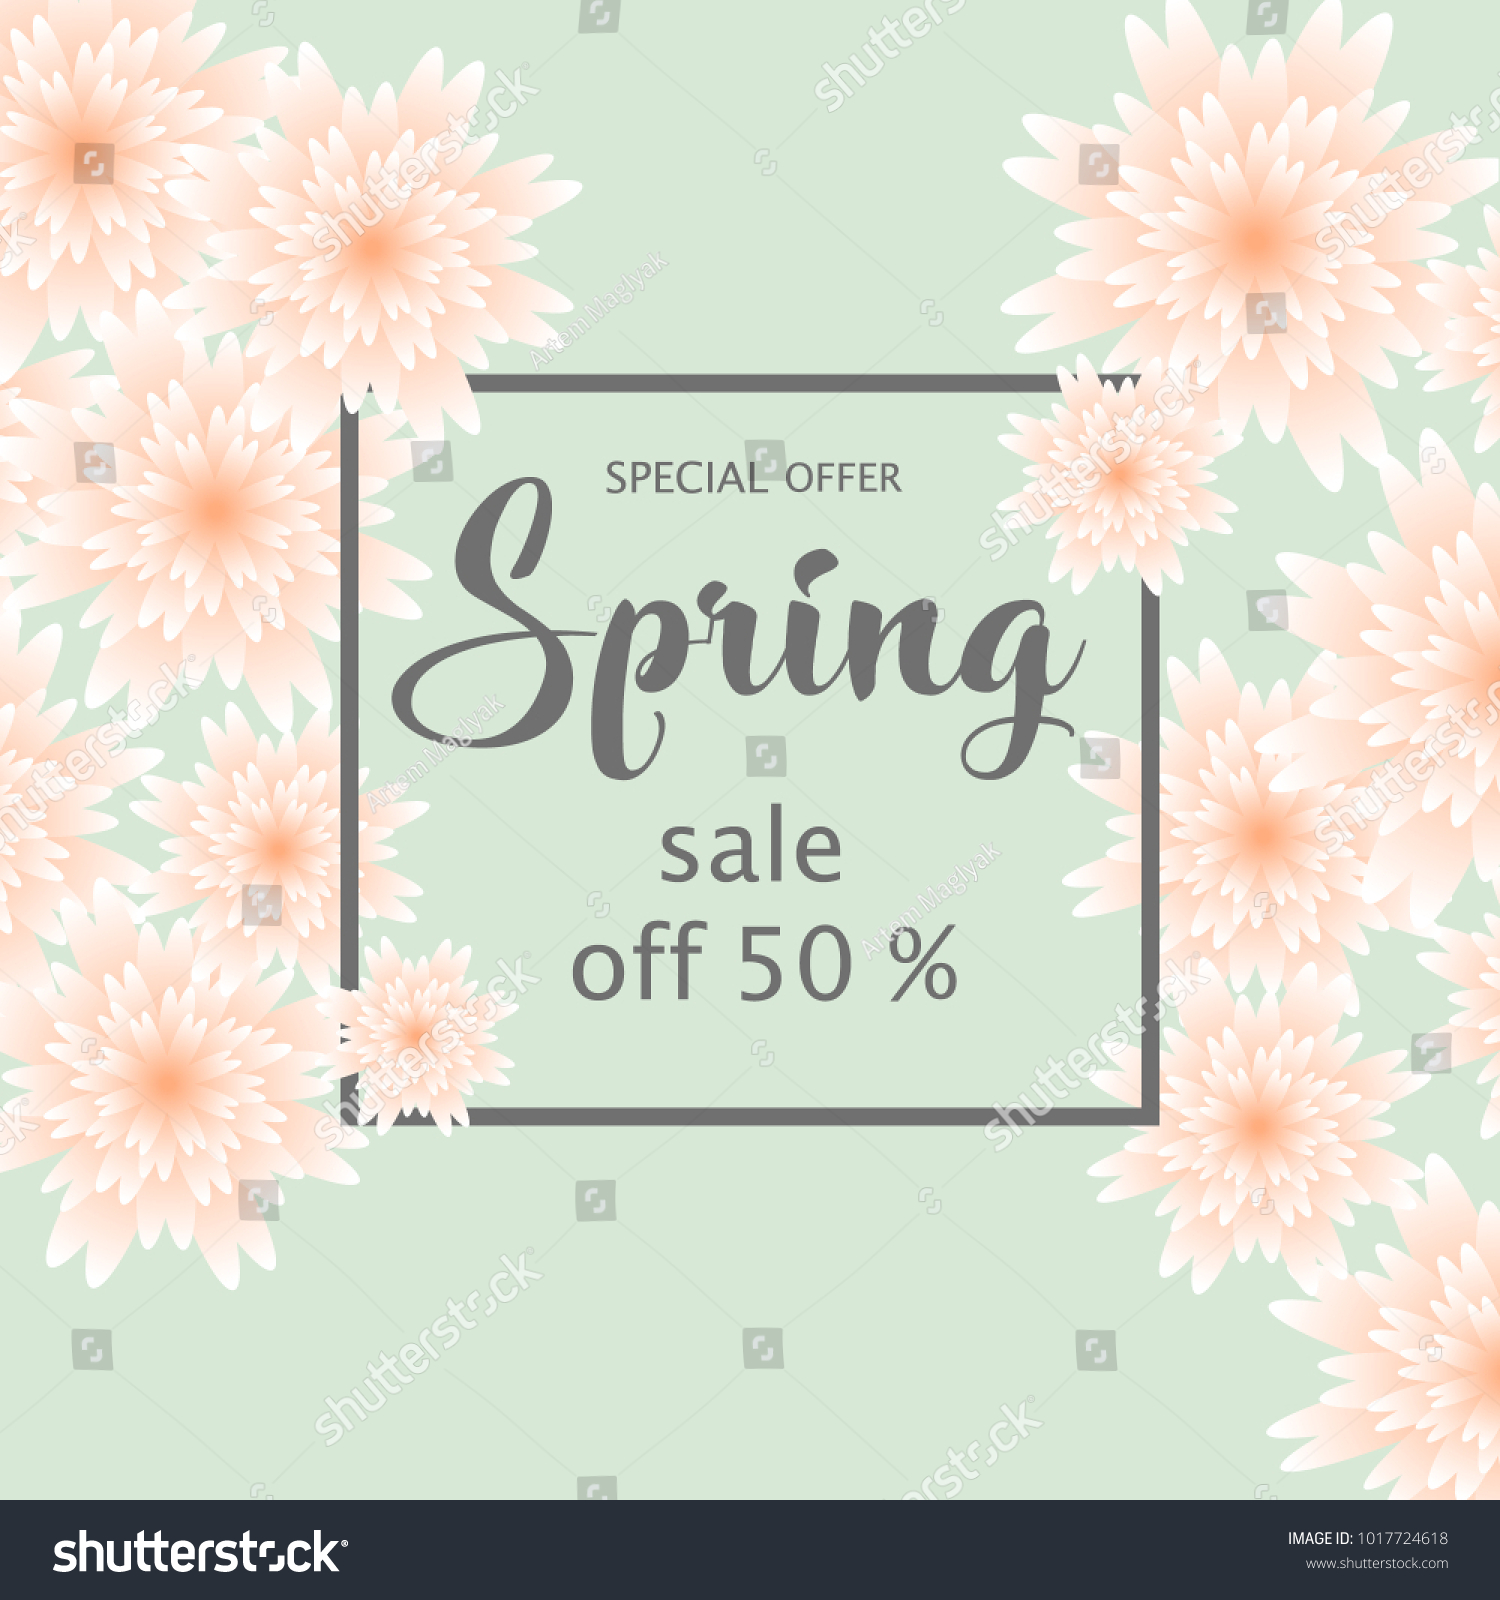 Spring sale banner paper flowers online stock vector 1017724618 spring sale banner with paper flowers for online shopping advertising actions magazines and websites mightylinksfo